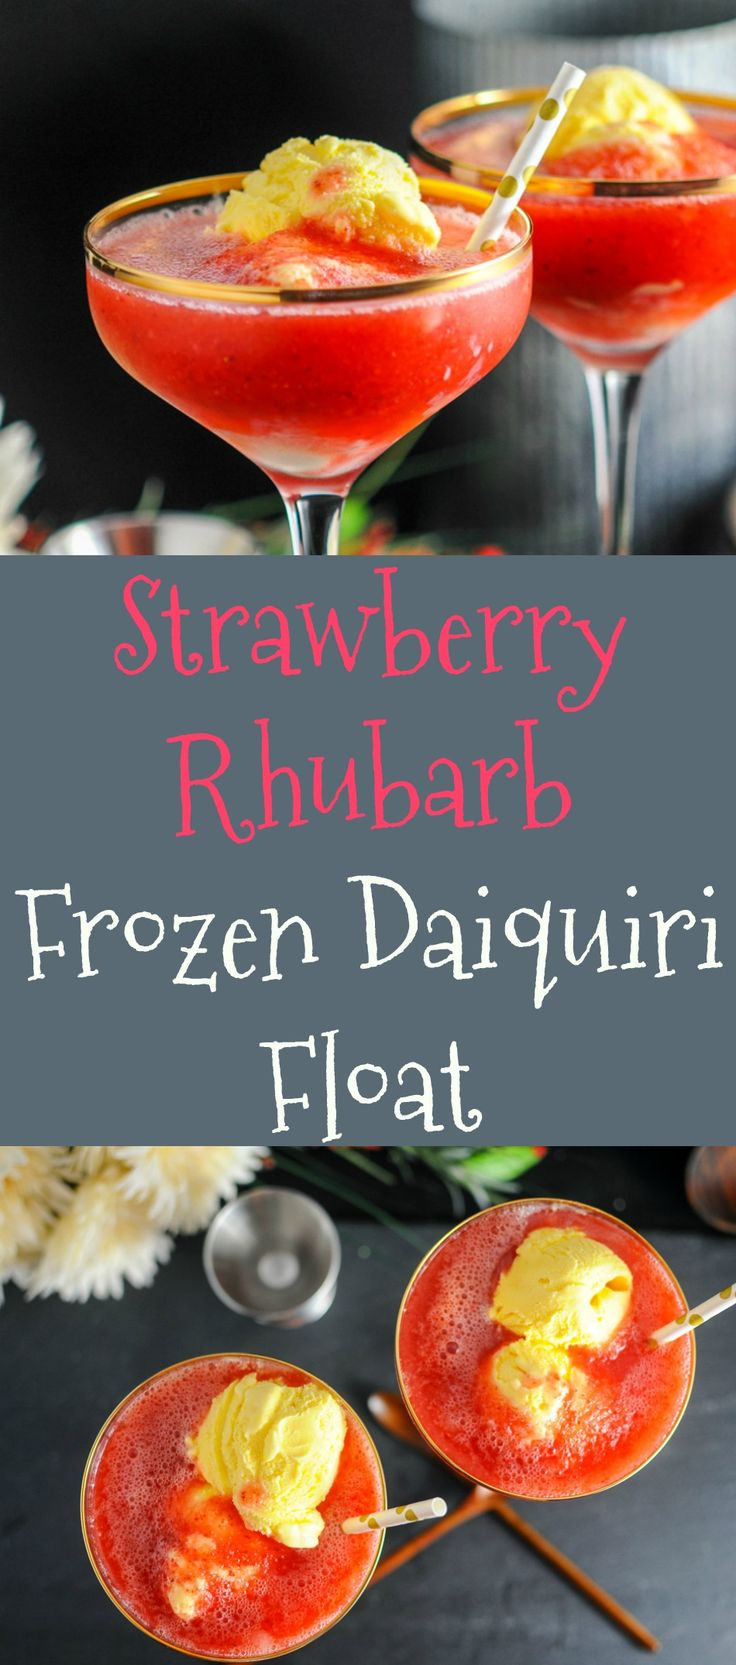 Strawberry Rhubarb Frozen Daiquiri Ice Cream Float  Recipe, dessert, strawberries, cocktails, craft cocktail, easy, blender, alcohol, rum, lime juice, drinks, summer, ice cubes, boozy